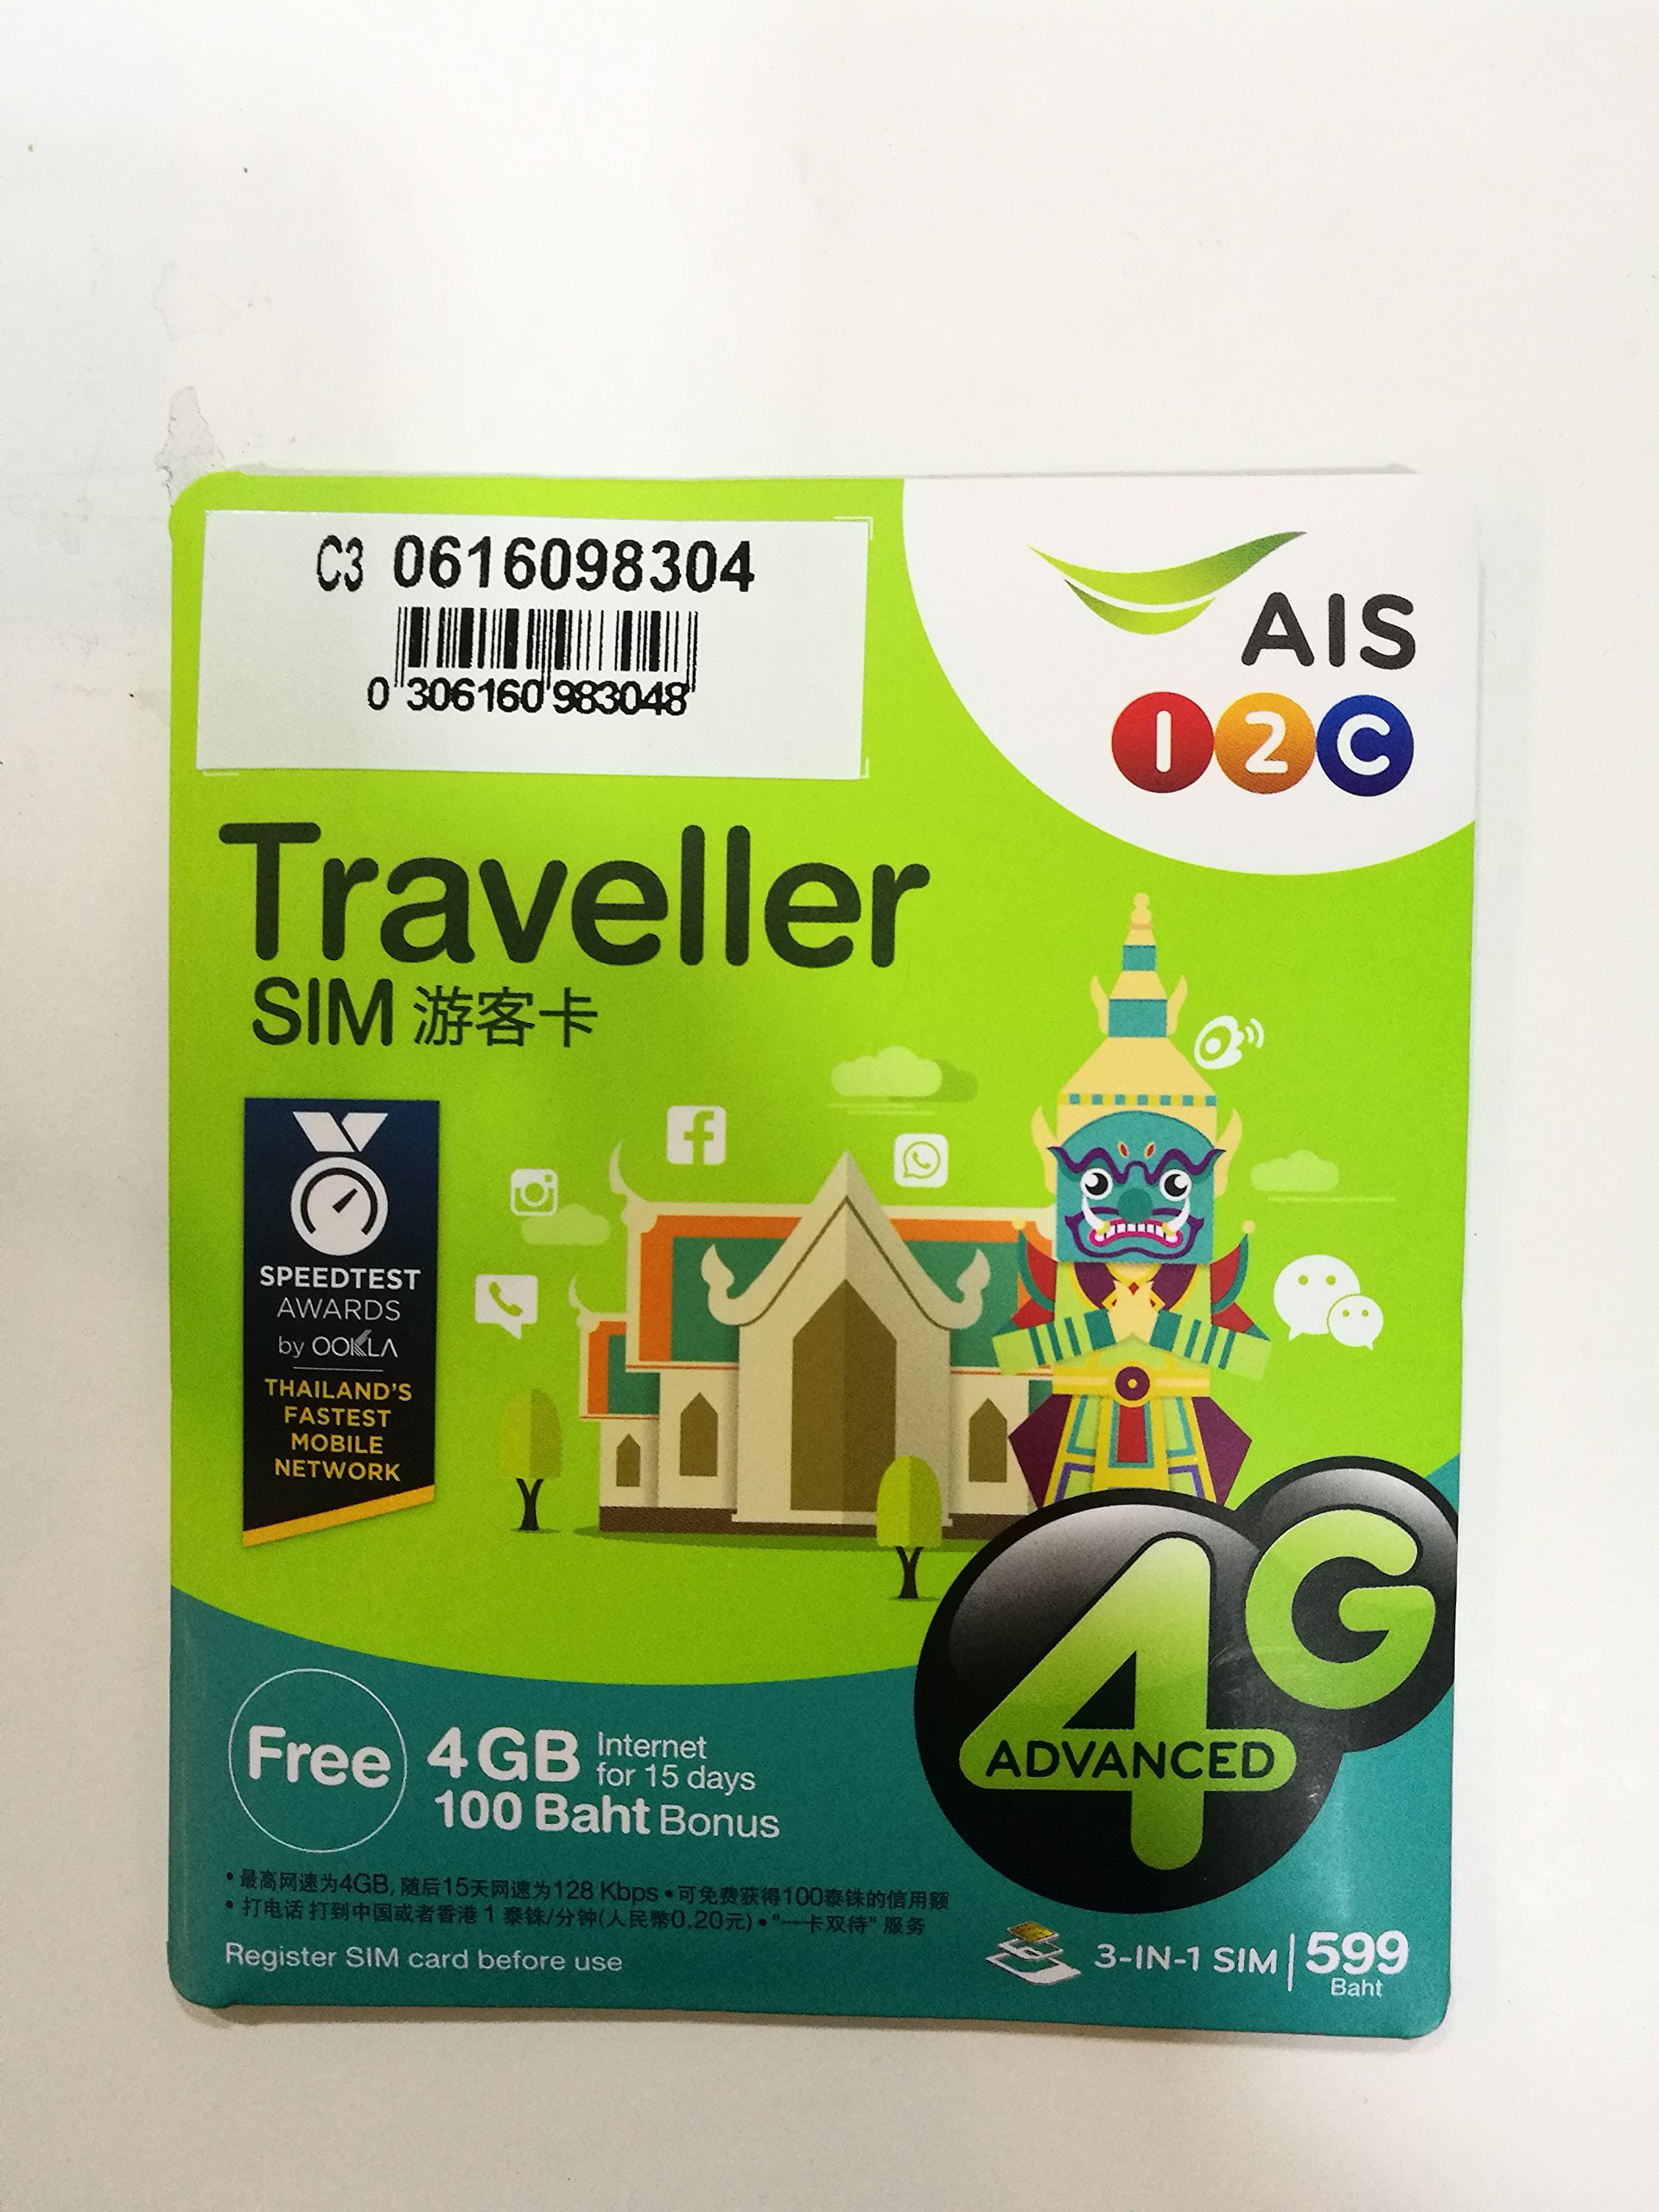 AIS Thailand Traveller SIM cards 6 GB non-stop internet for 15 days by AIS